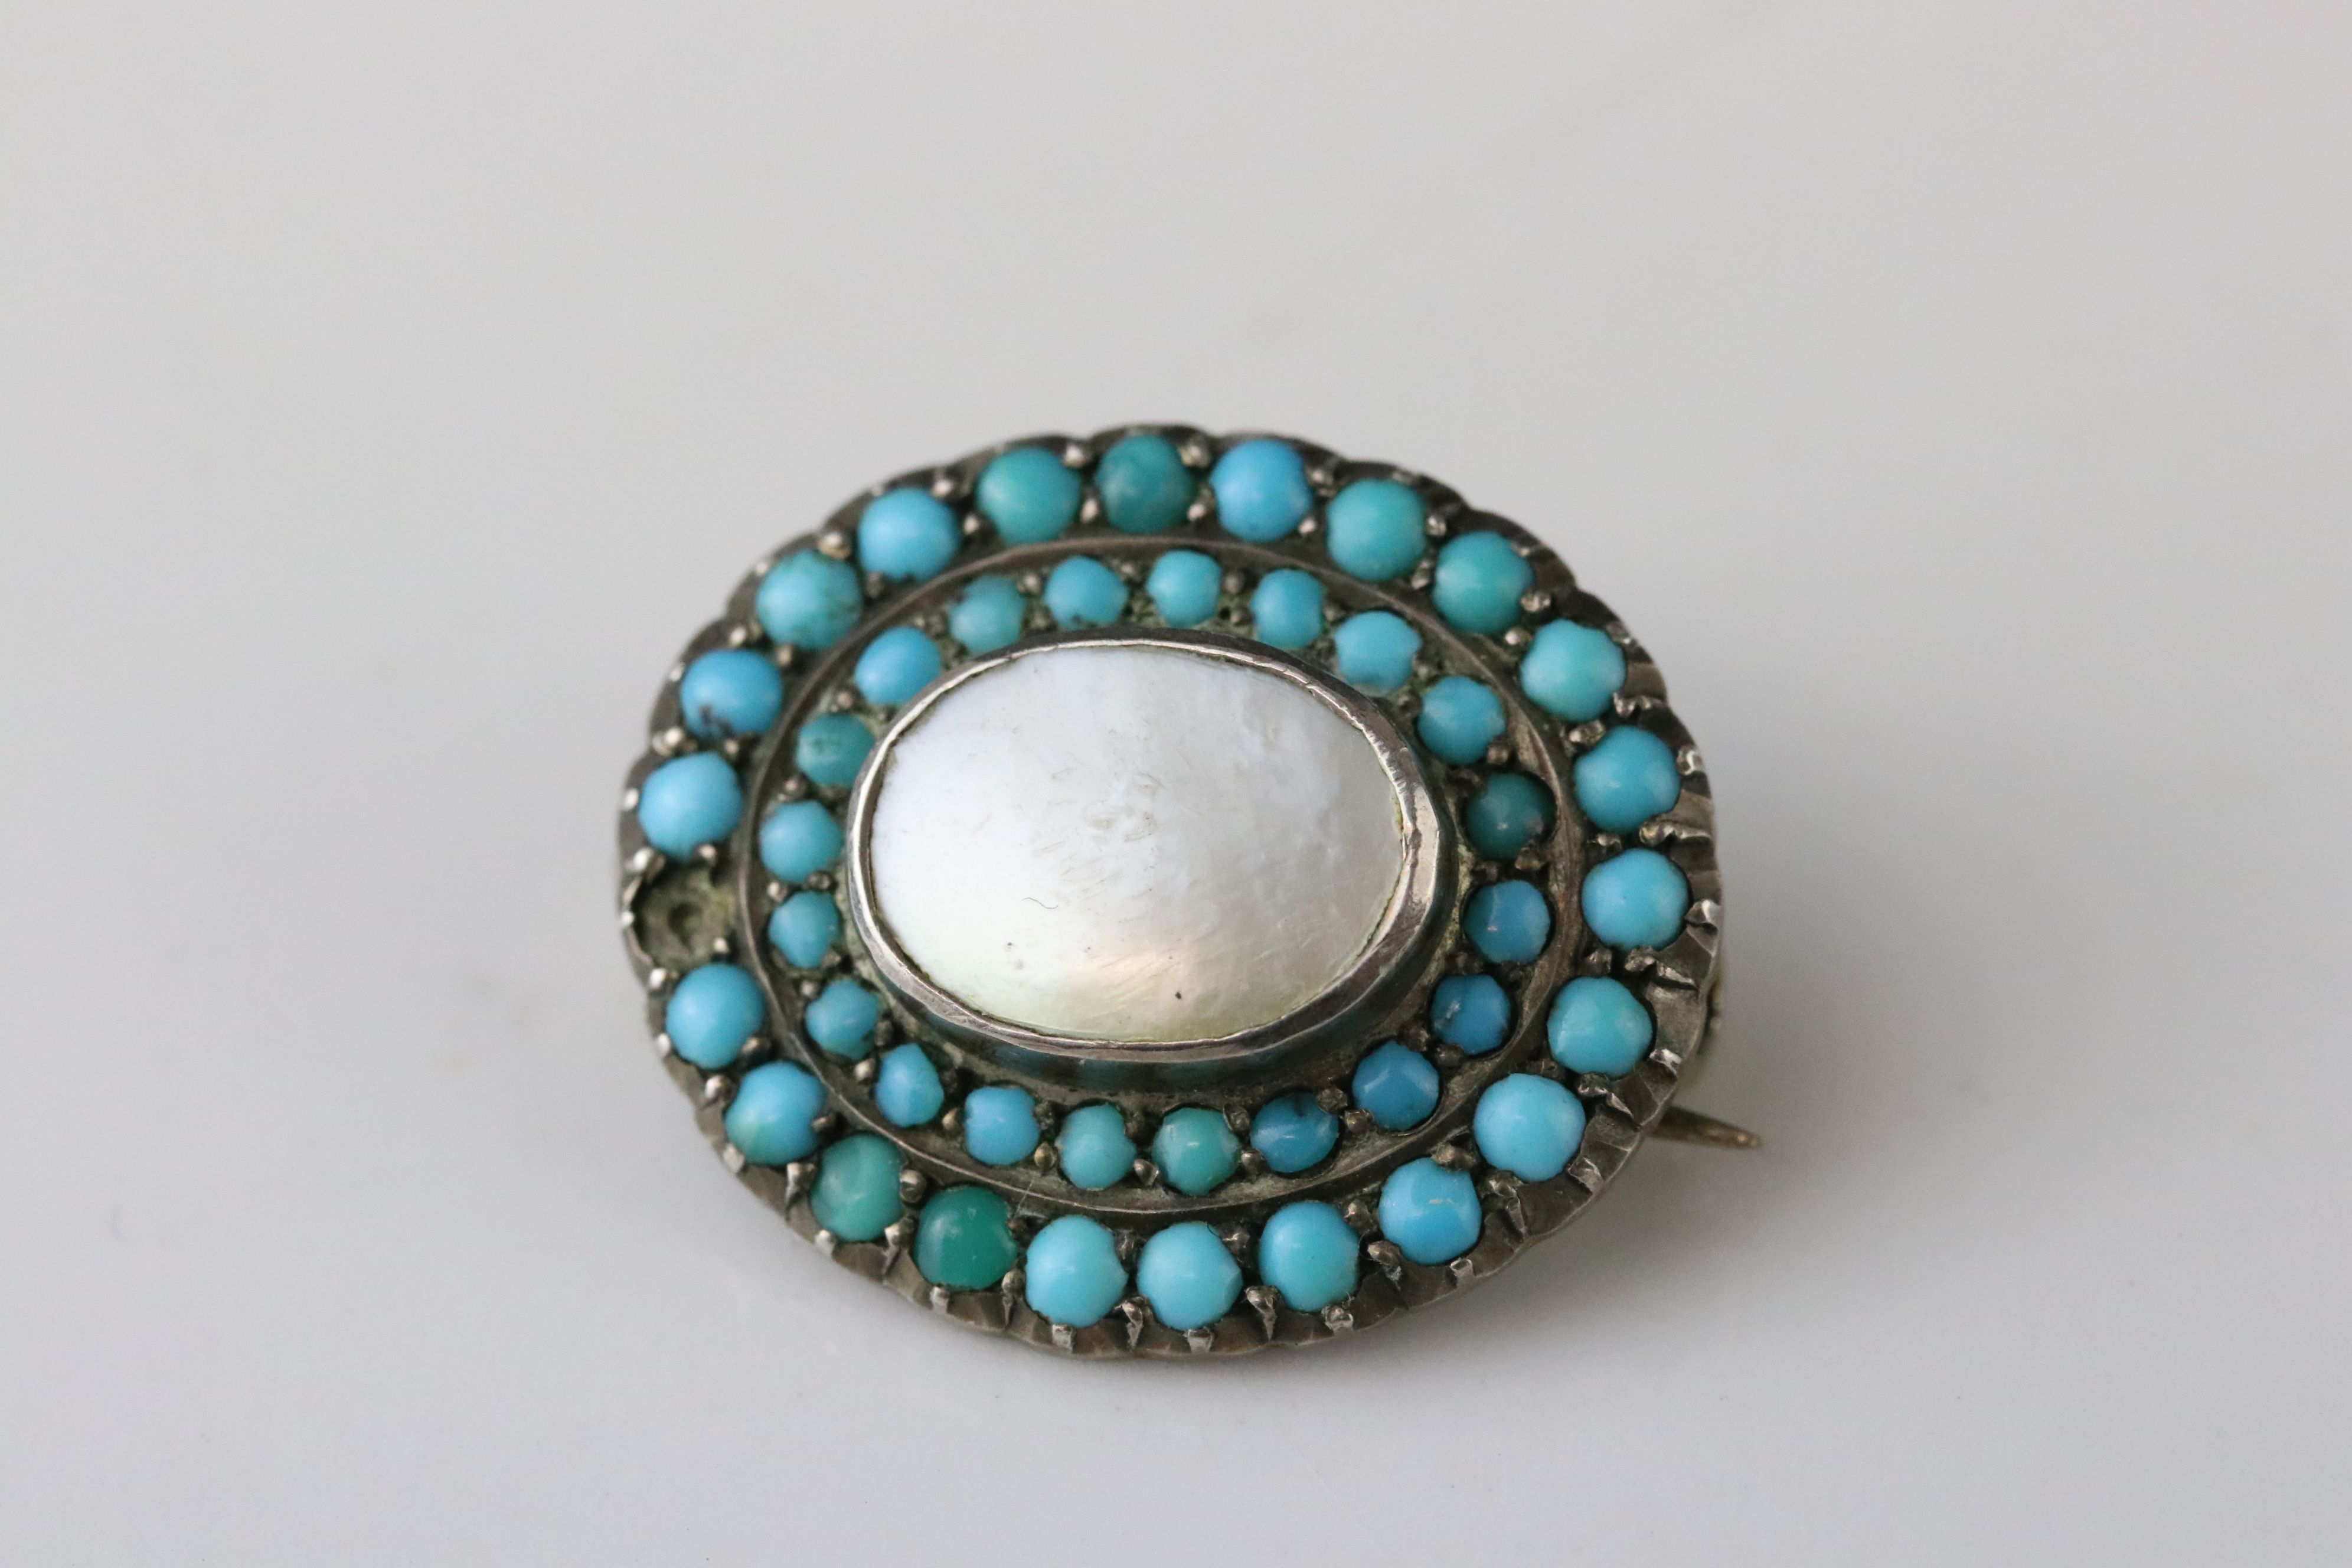 Late Victorian turquoise and seed pearl 9ct yellow gold sweetheart brooch, the central heart motif - Image 9 of 9